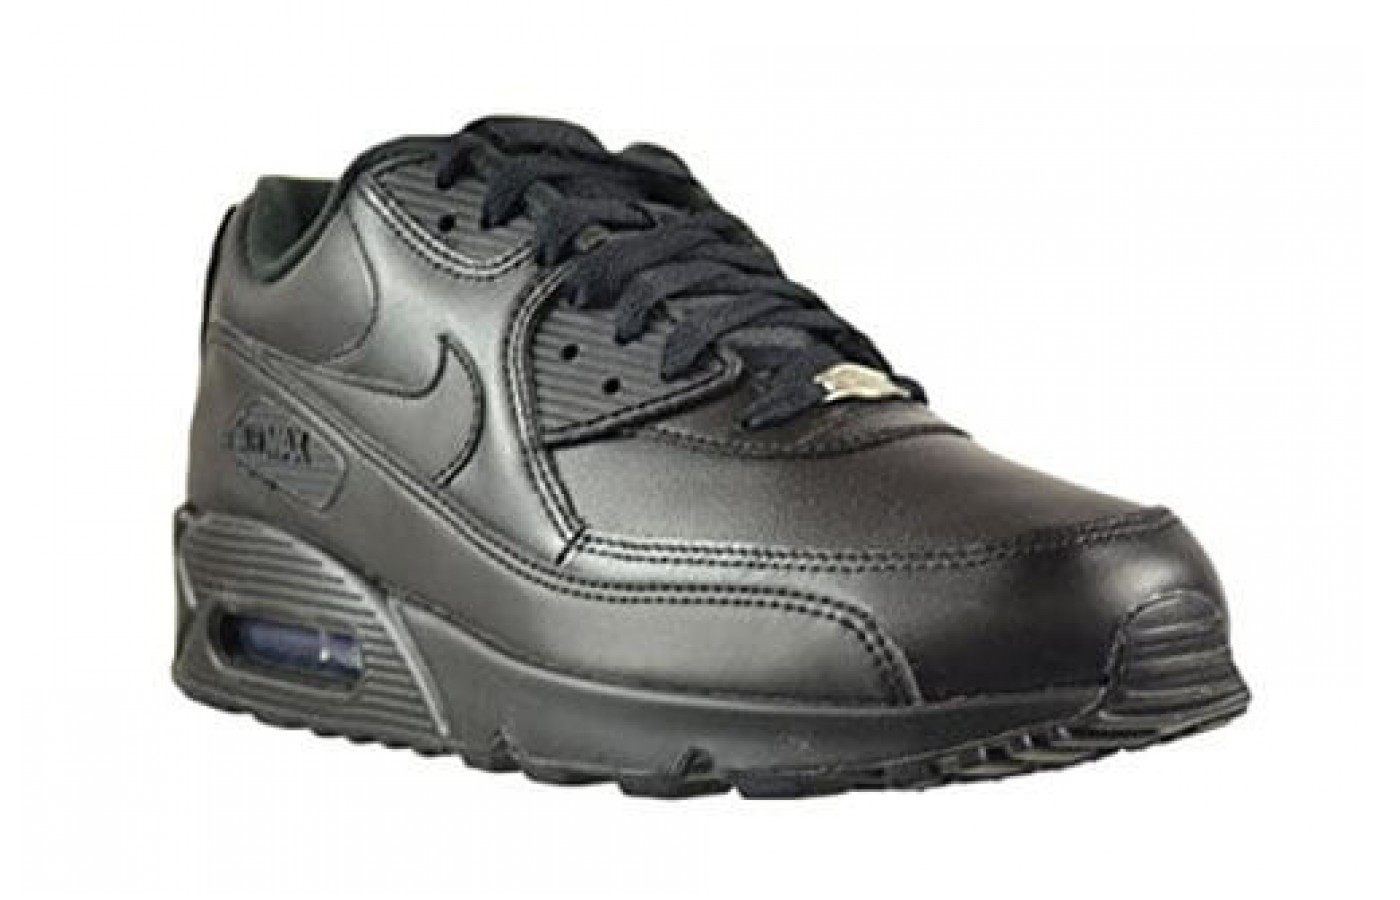 revendeur 5da7a 5ff5f Nike Air Max 90 Leather